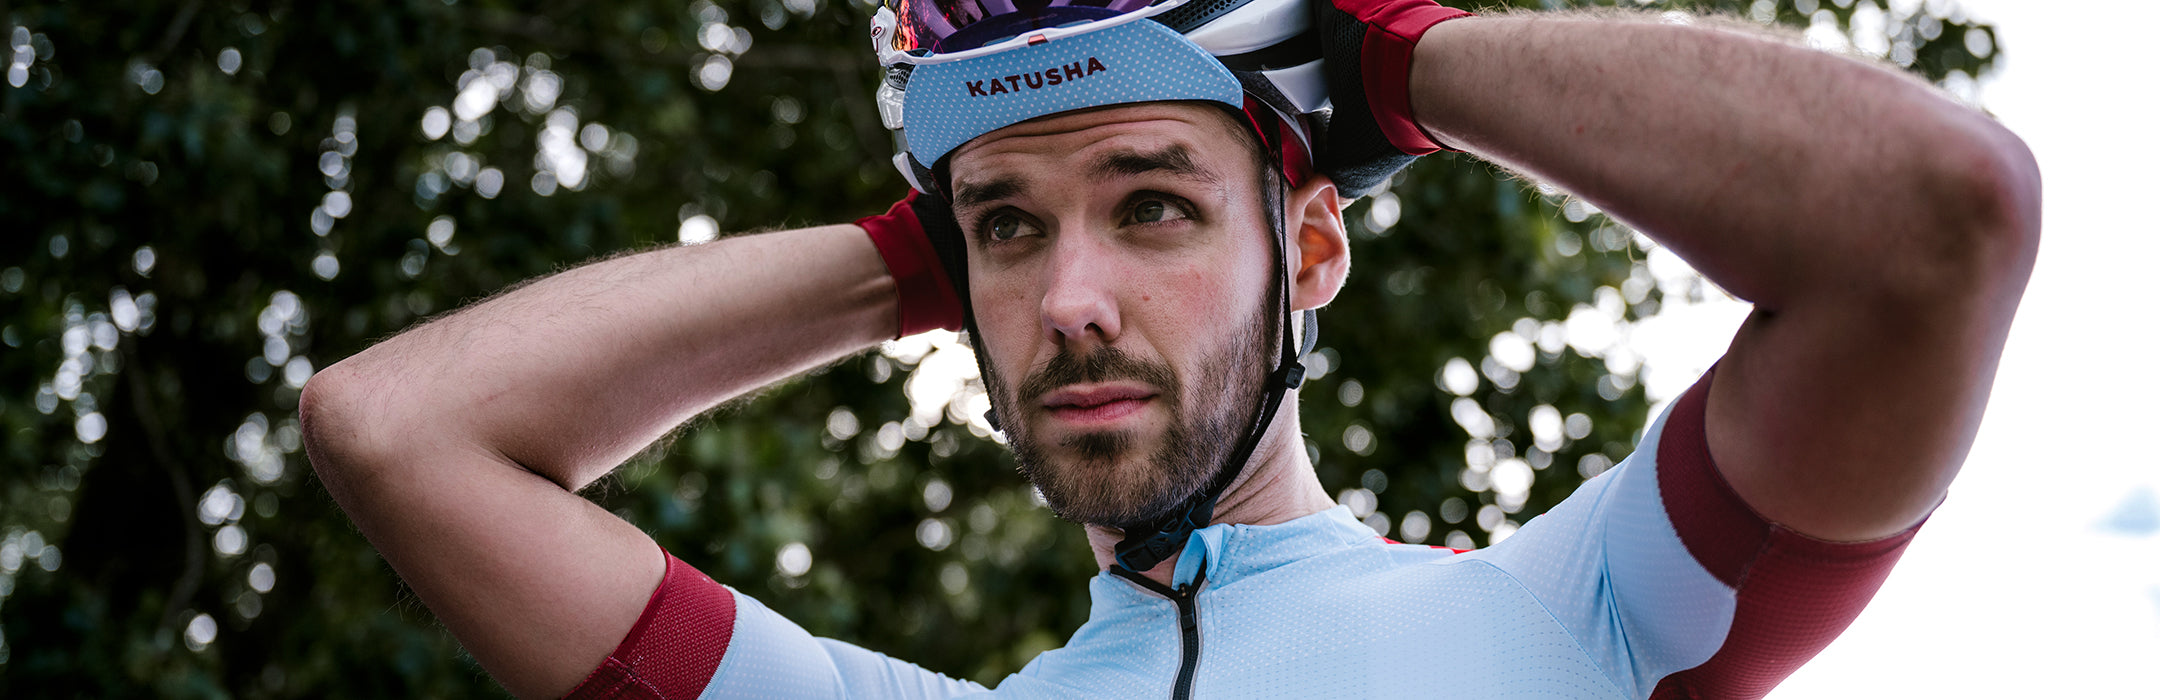 KATUSHA Performance Apparel - Men's Cycling Caps